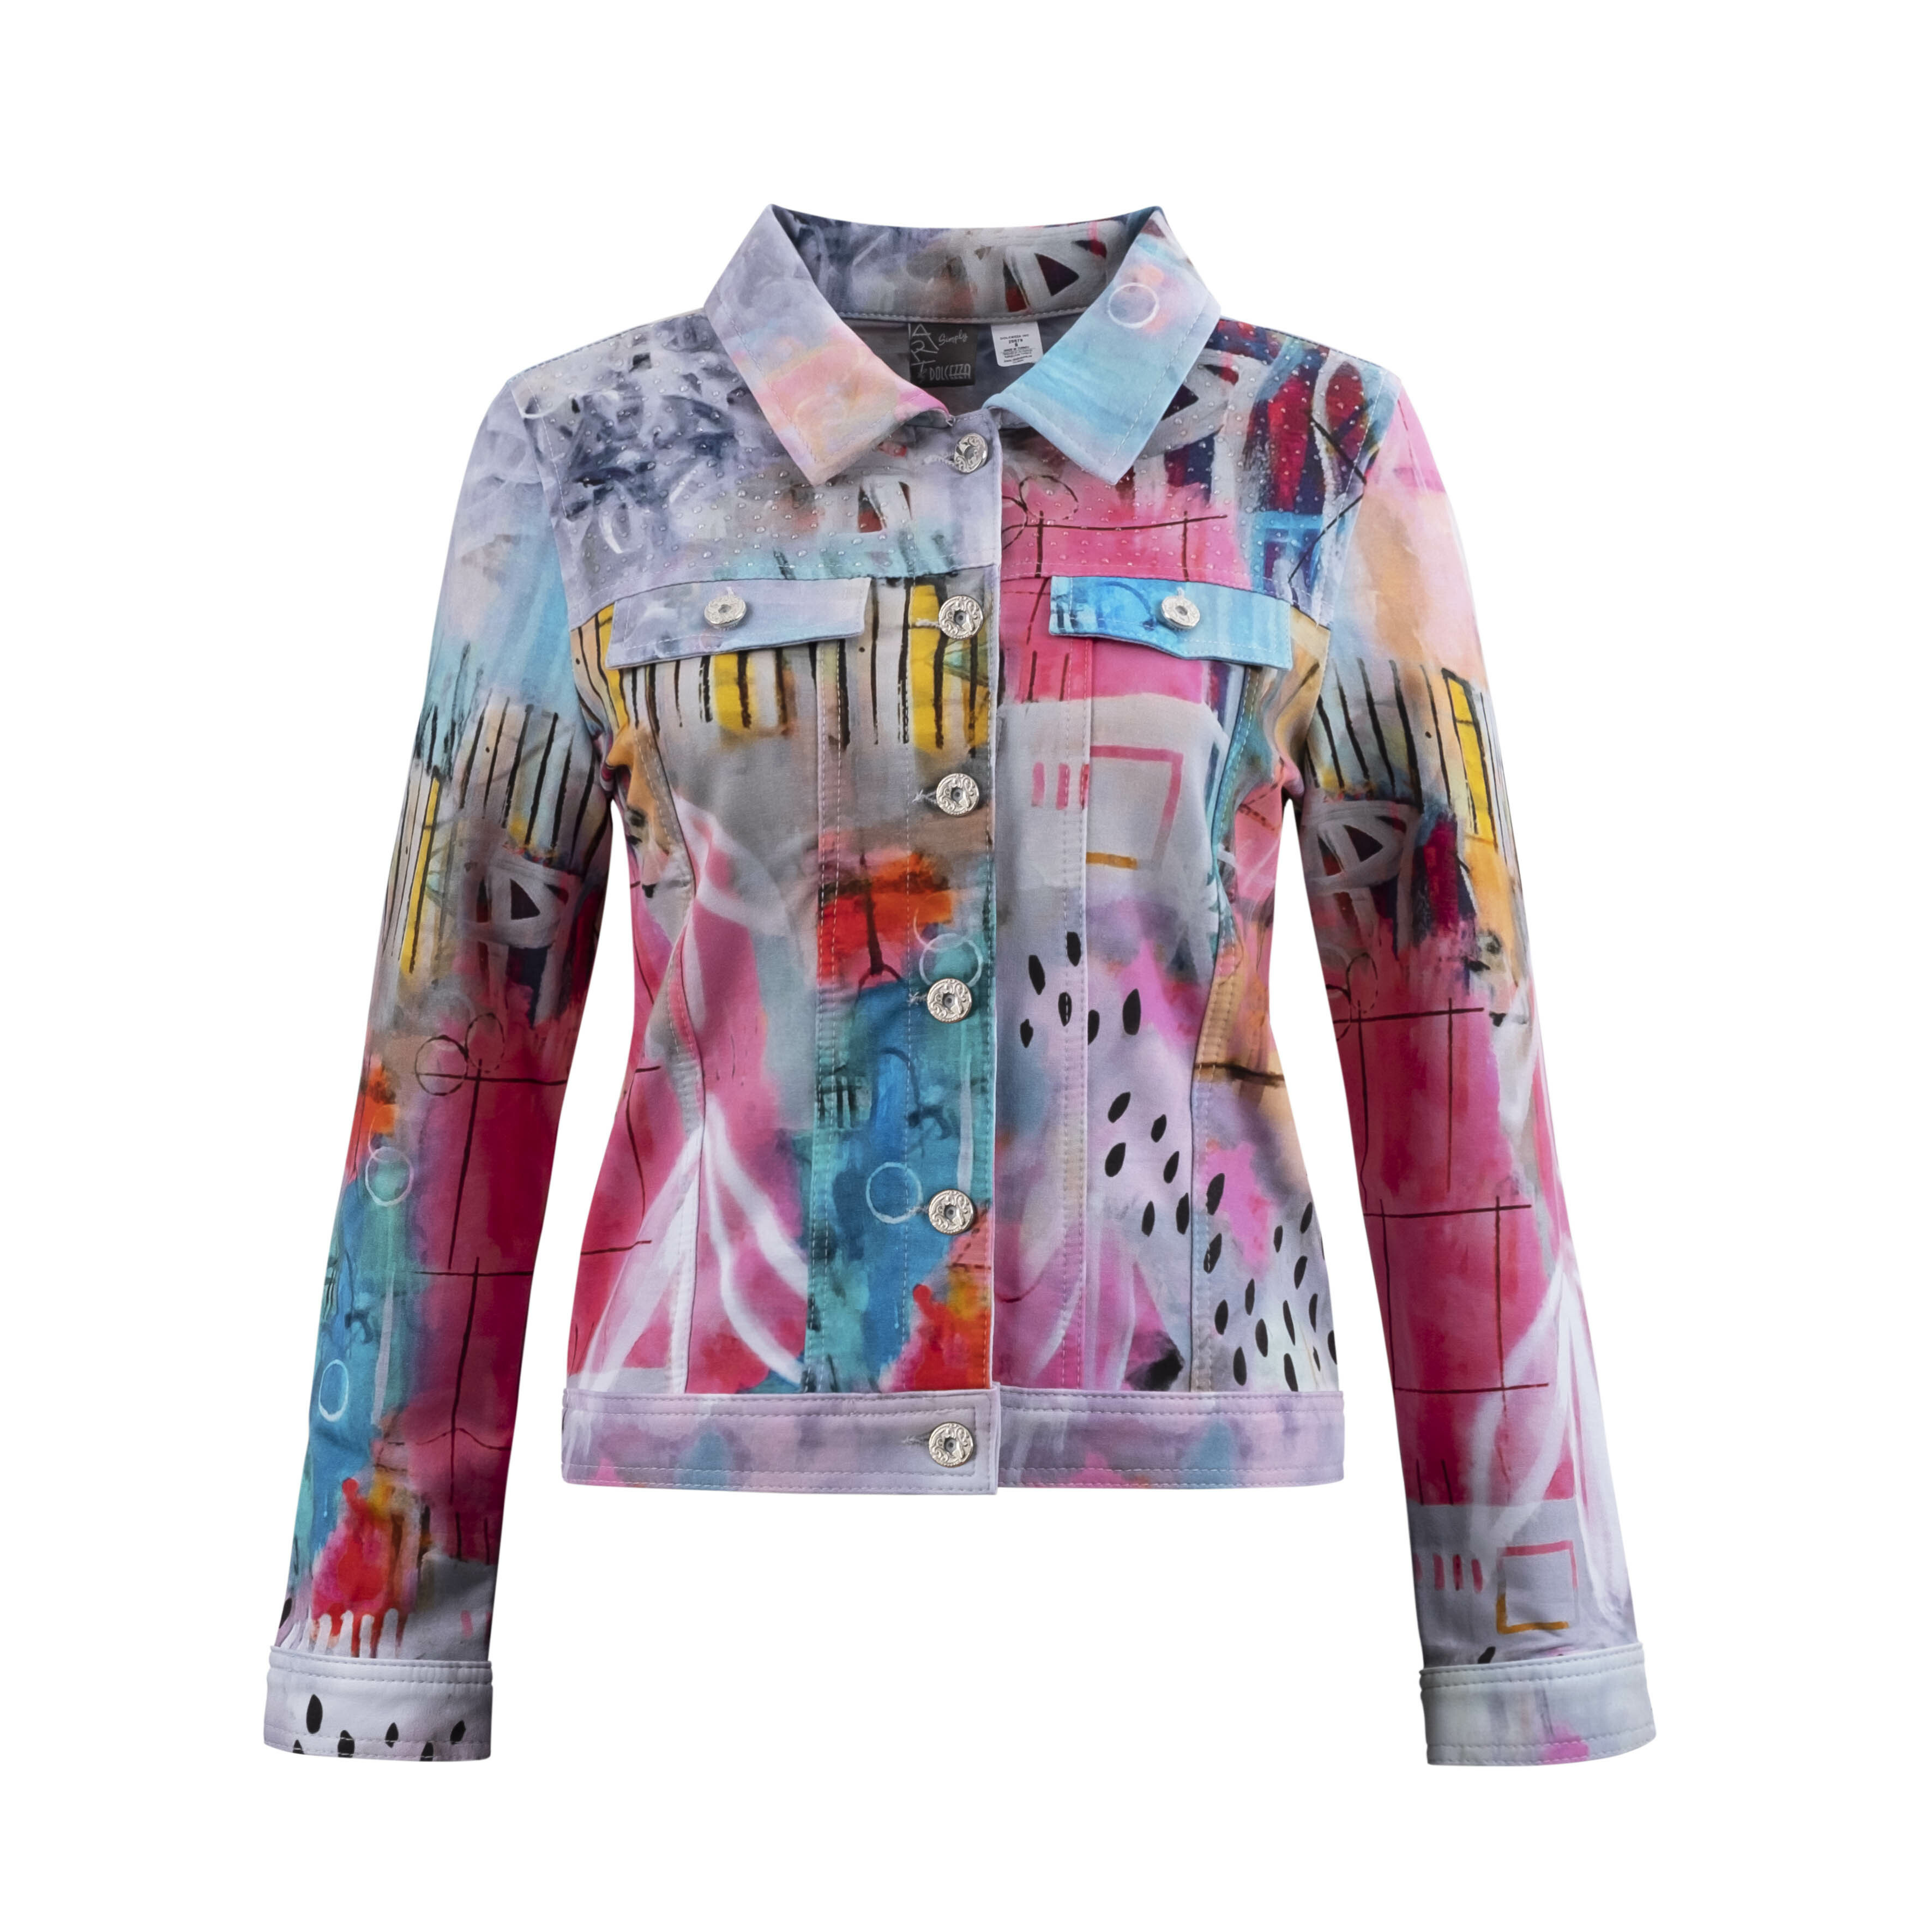 Simply Art Dolcezza: Receive The Best Things In Life Abstract Art Denim Jacket DOLCEZZA_SIMPLYART_20679